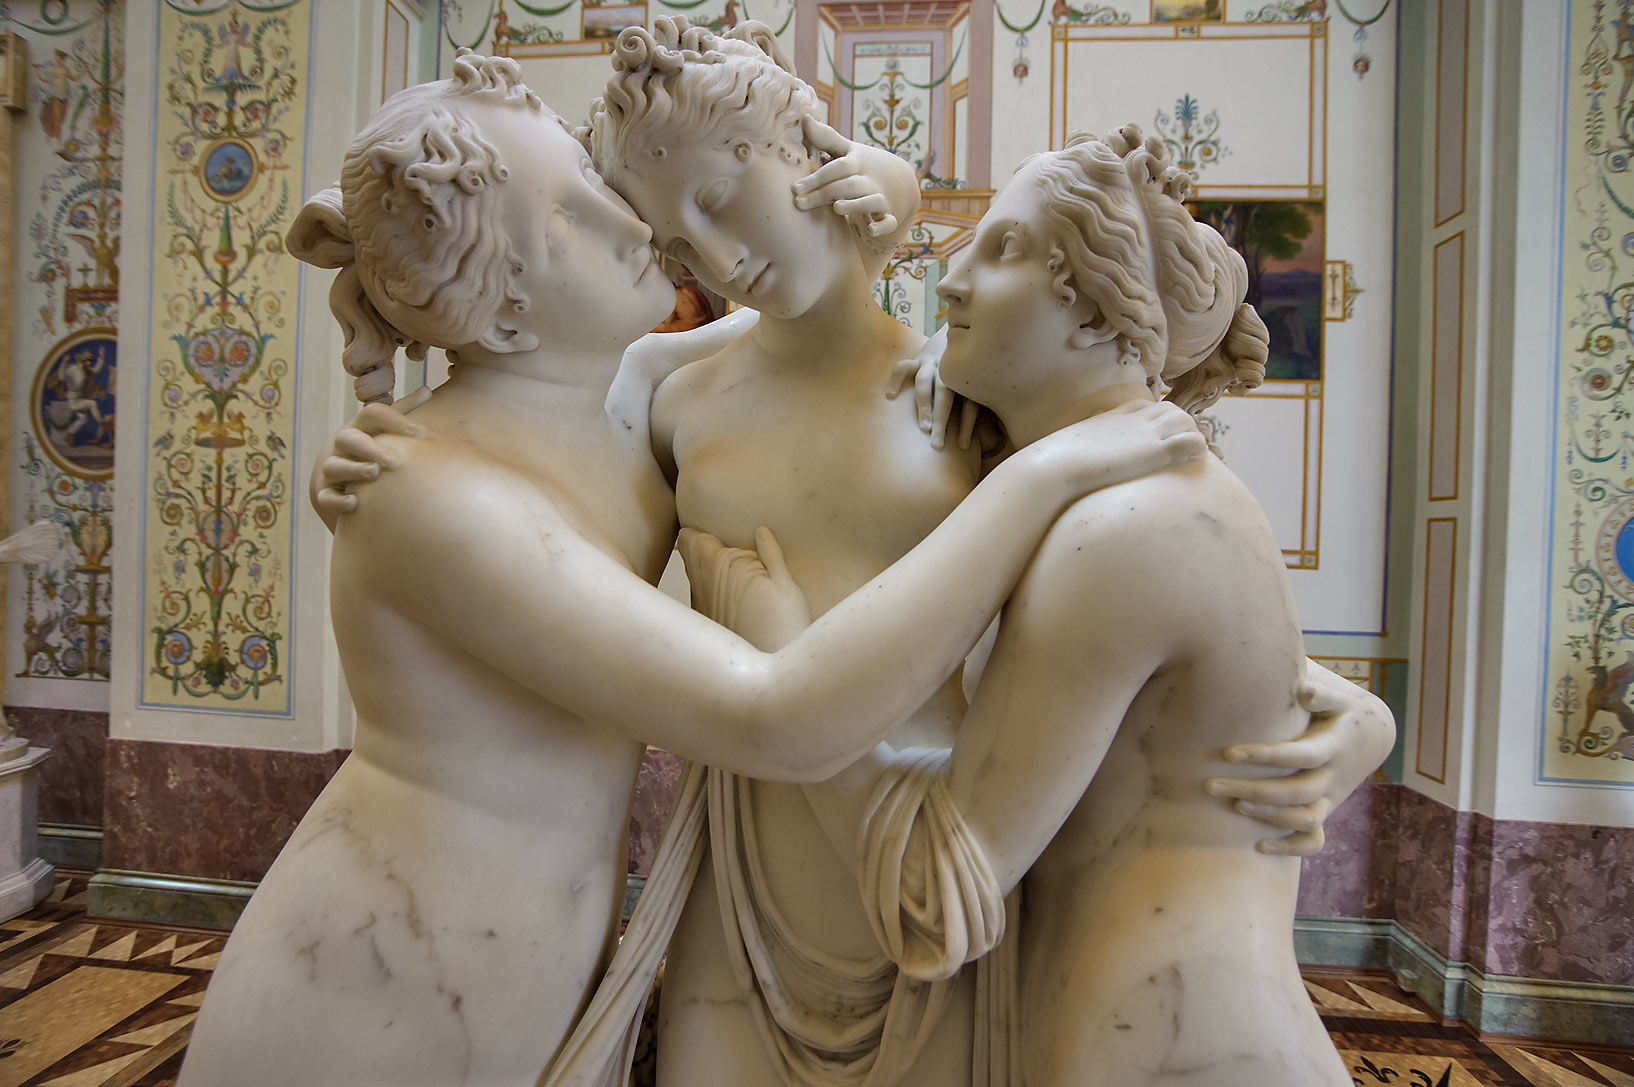 A marble sculpture of three women in Gallery of...Hermitage Museum. Petersburg, Russia